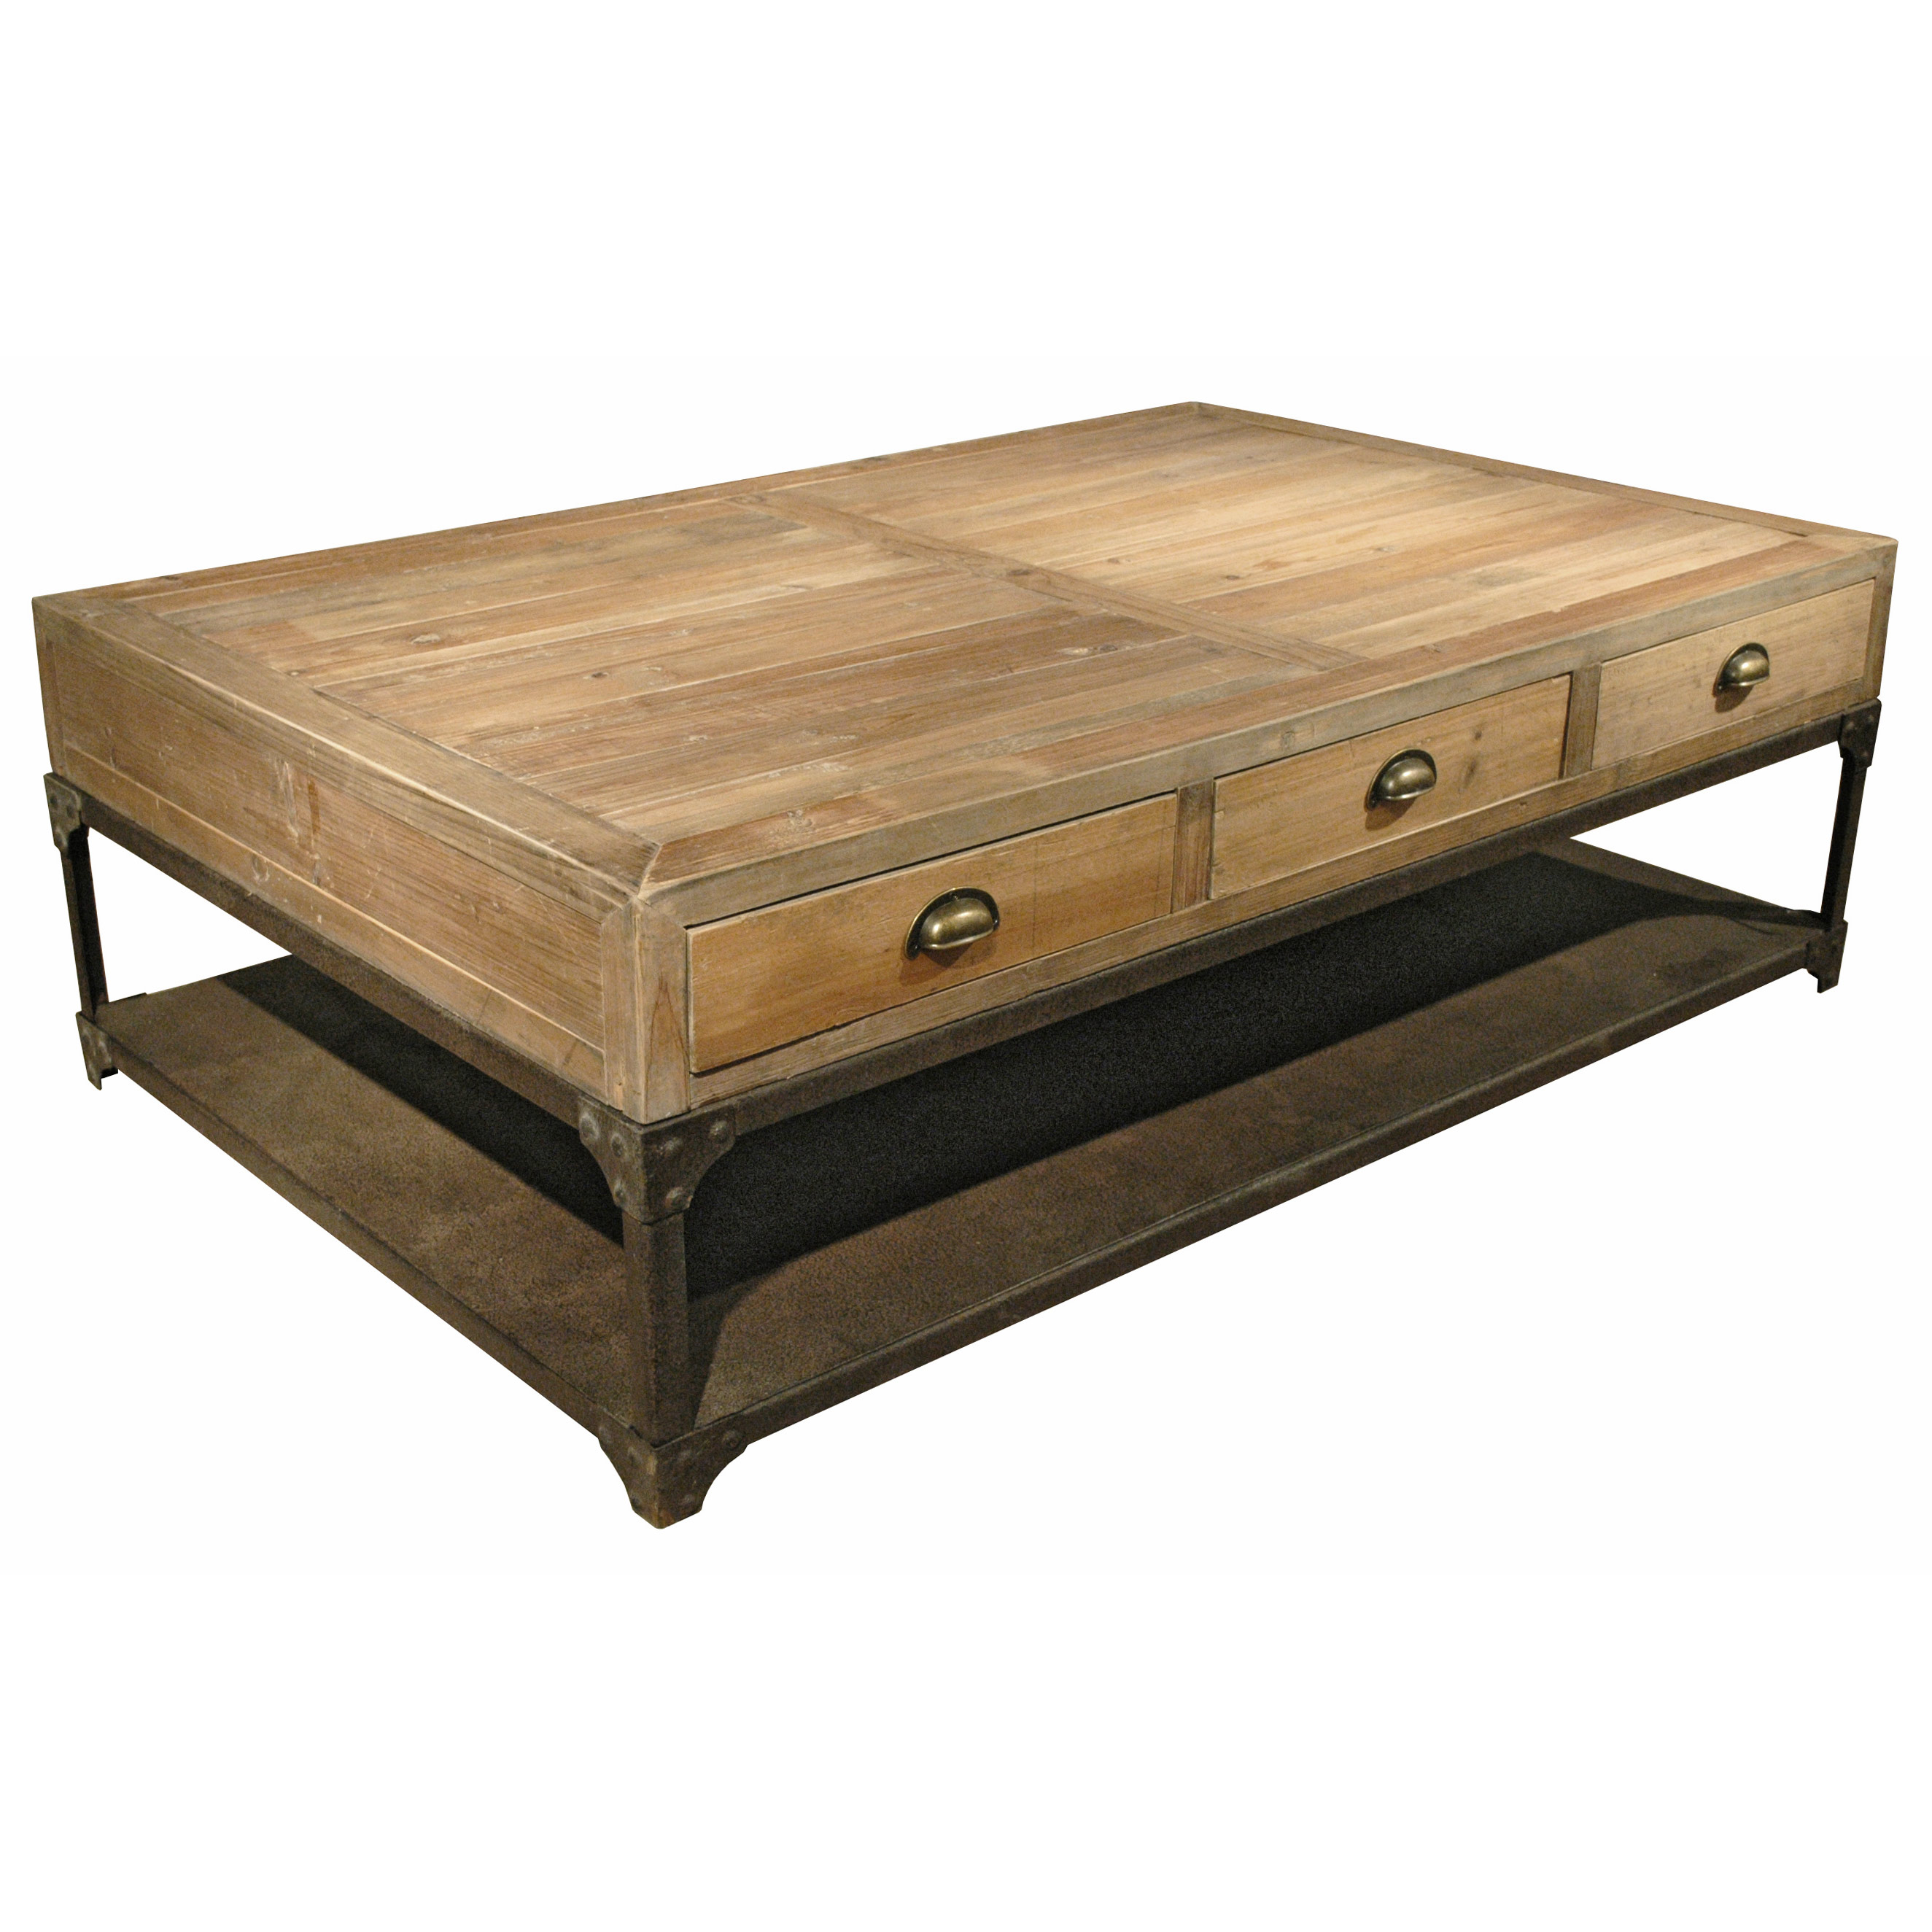 Luca Industrial Loft Reclaimed Wood Rustic Iron Drawers Coffee Table